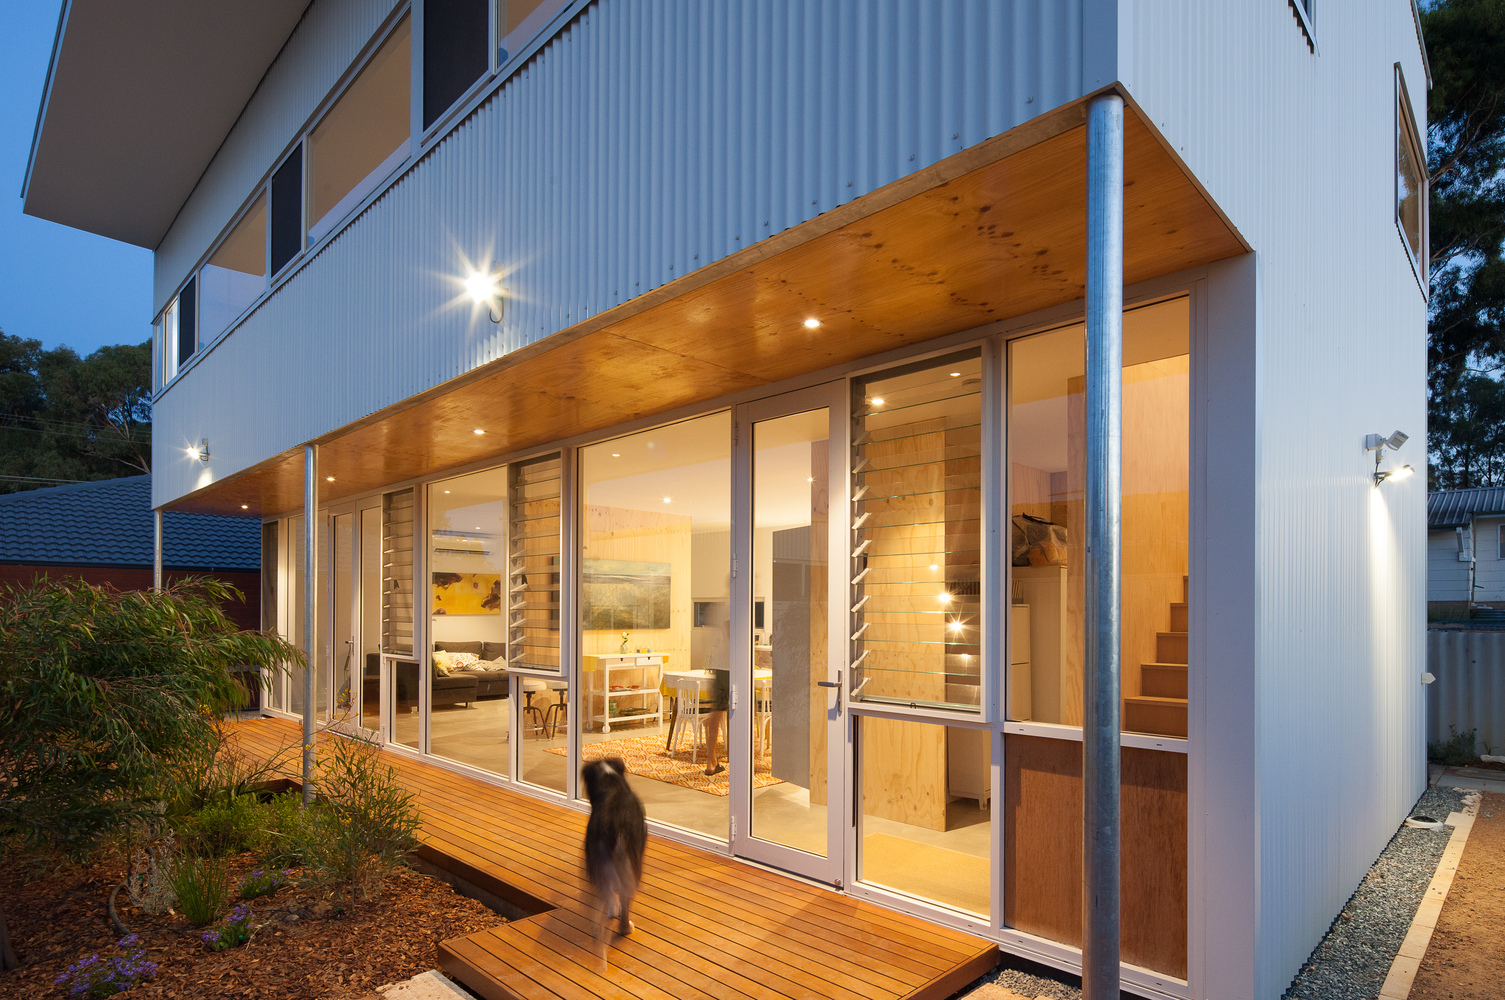 A Compact, Sustainable and Affordable Alternative to Project Homes